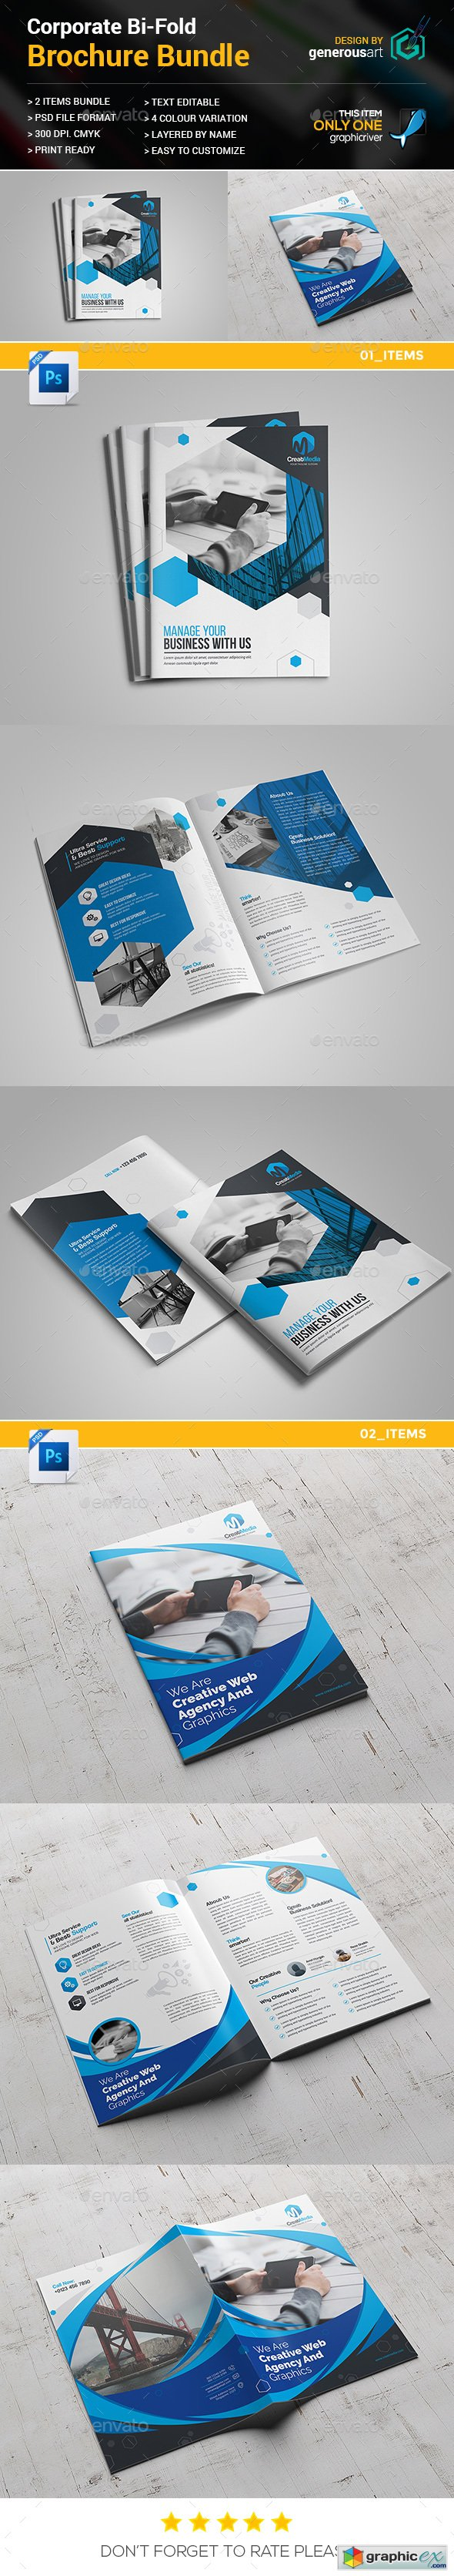 Business Bi-Fold Brochure Bundle 2 in 1